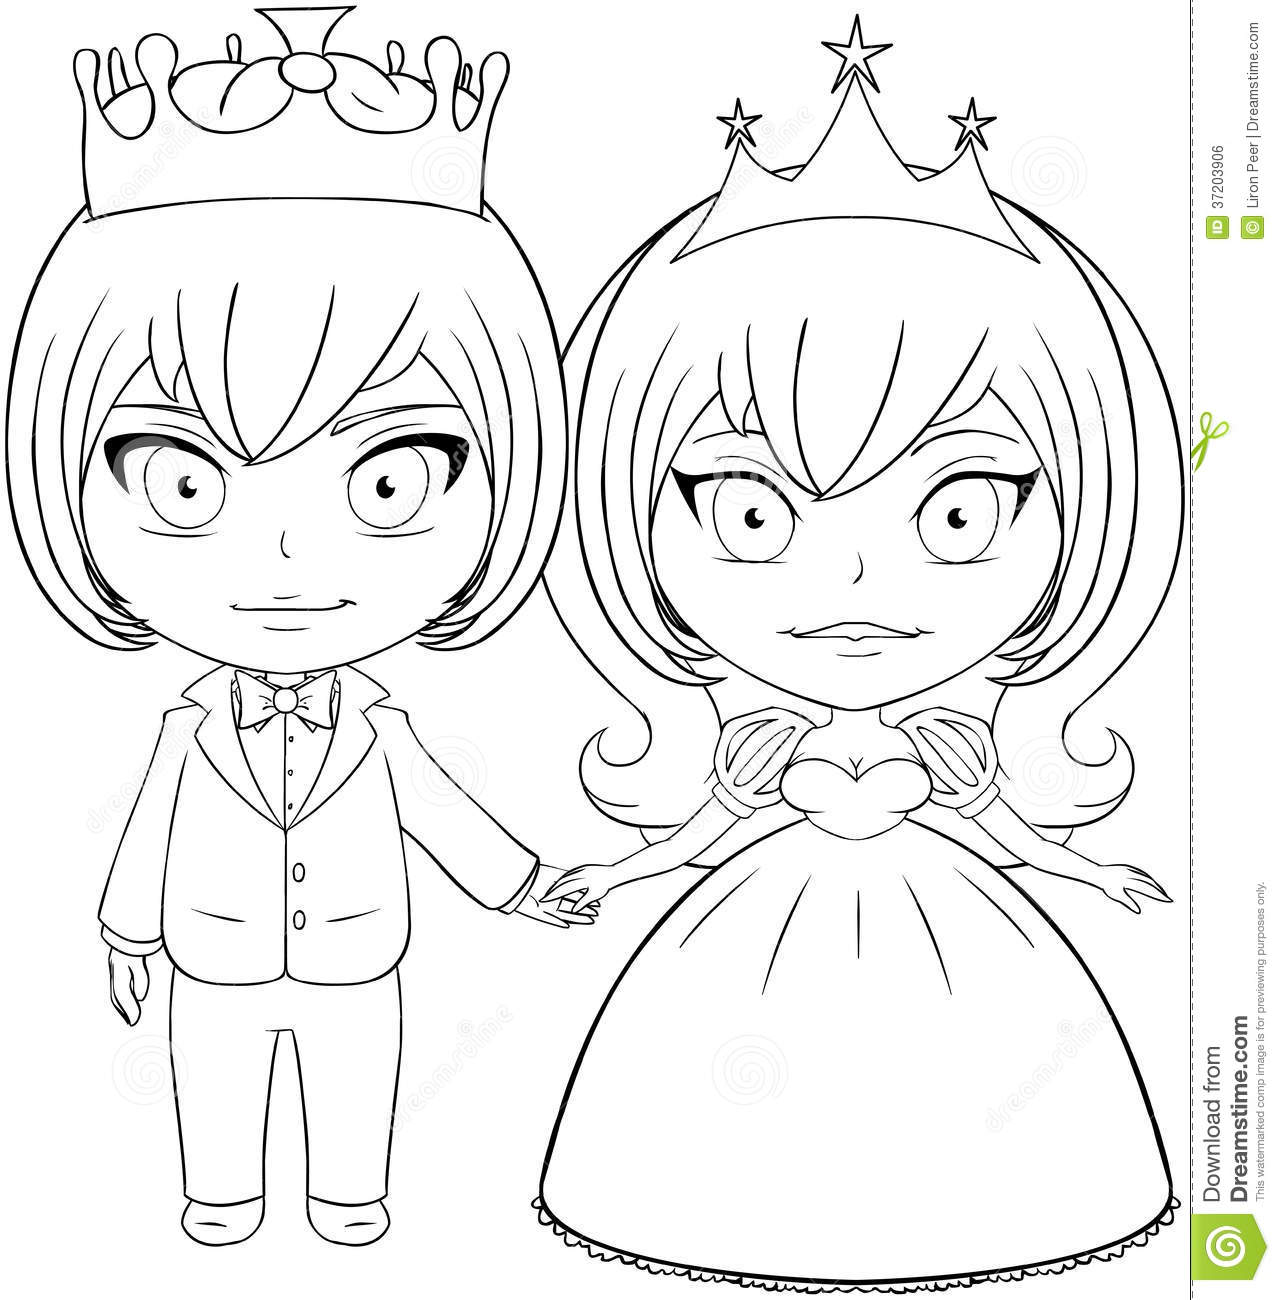 Prince And Princess Coloring Page 2 Stock Vector - Illustration of ...